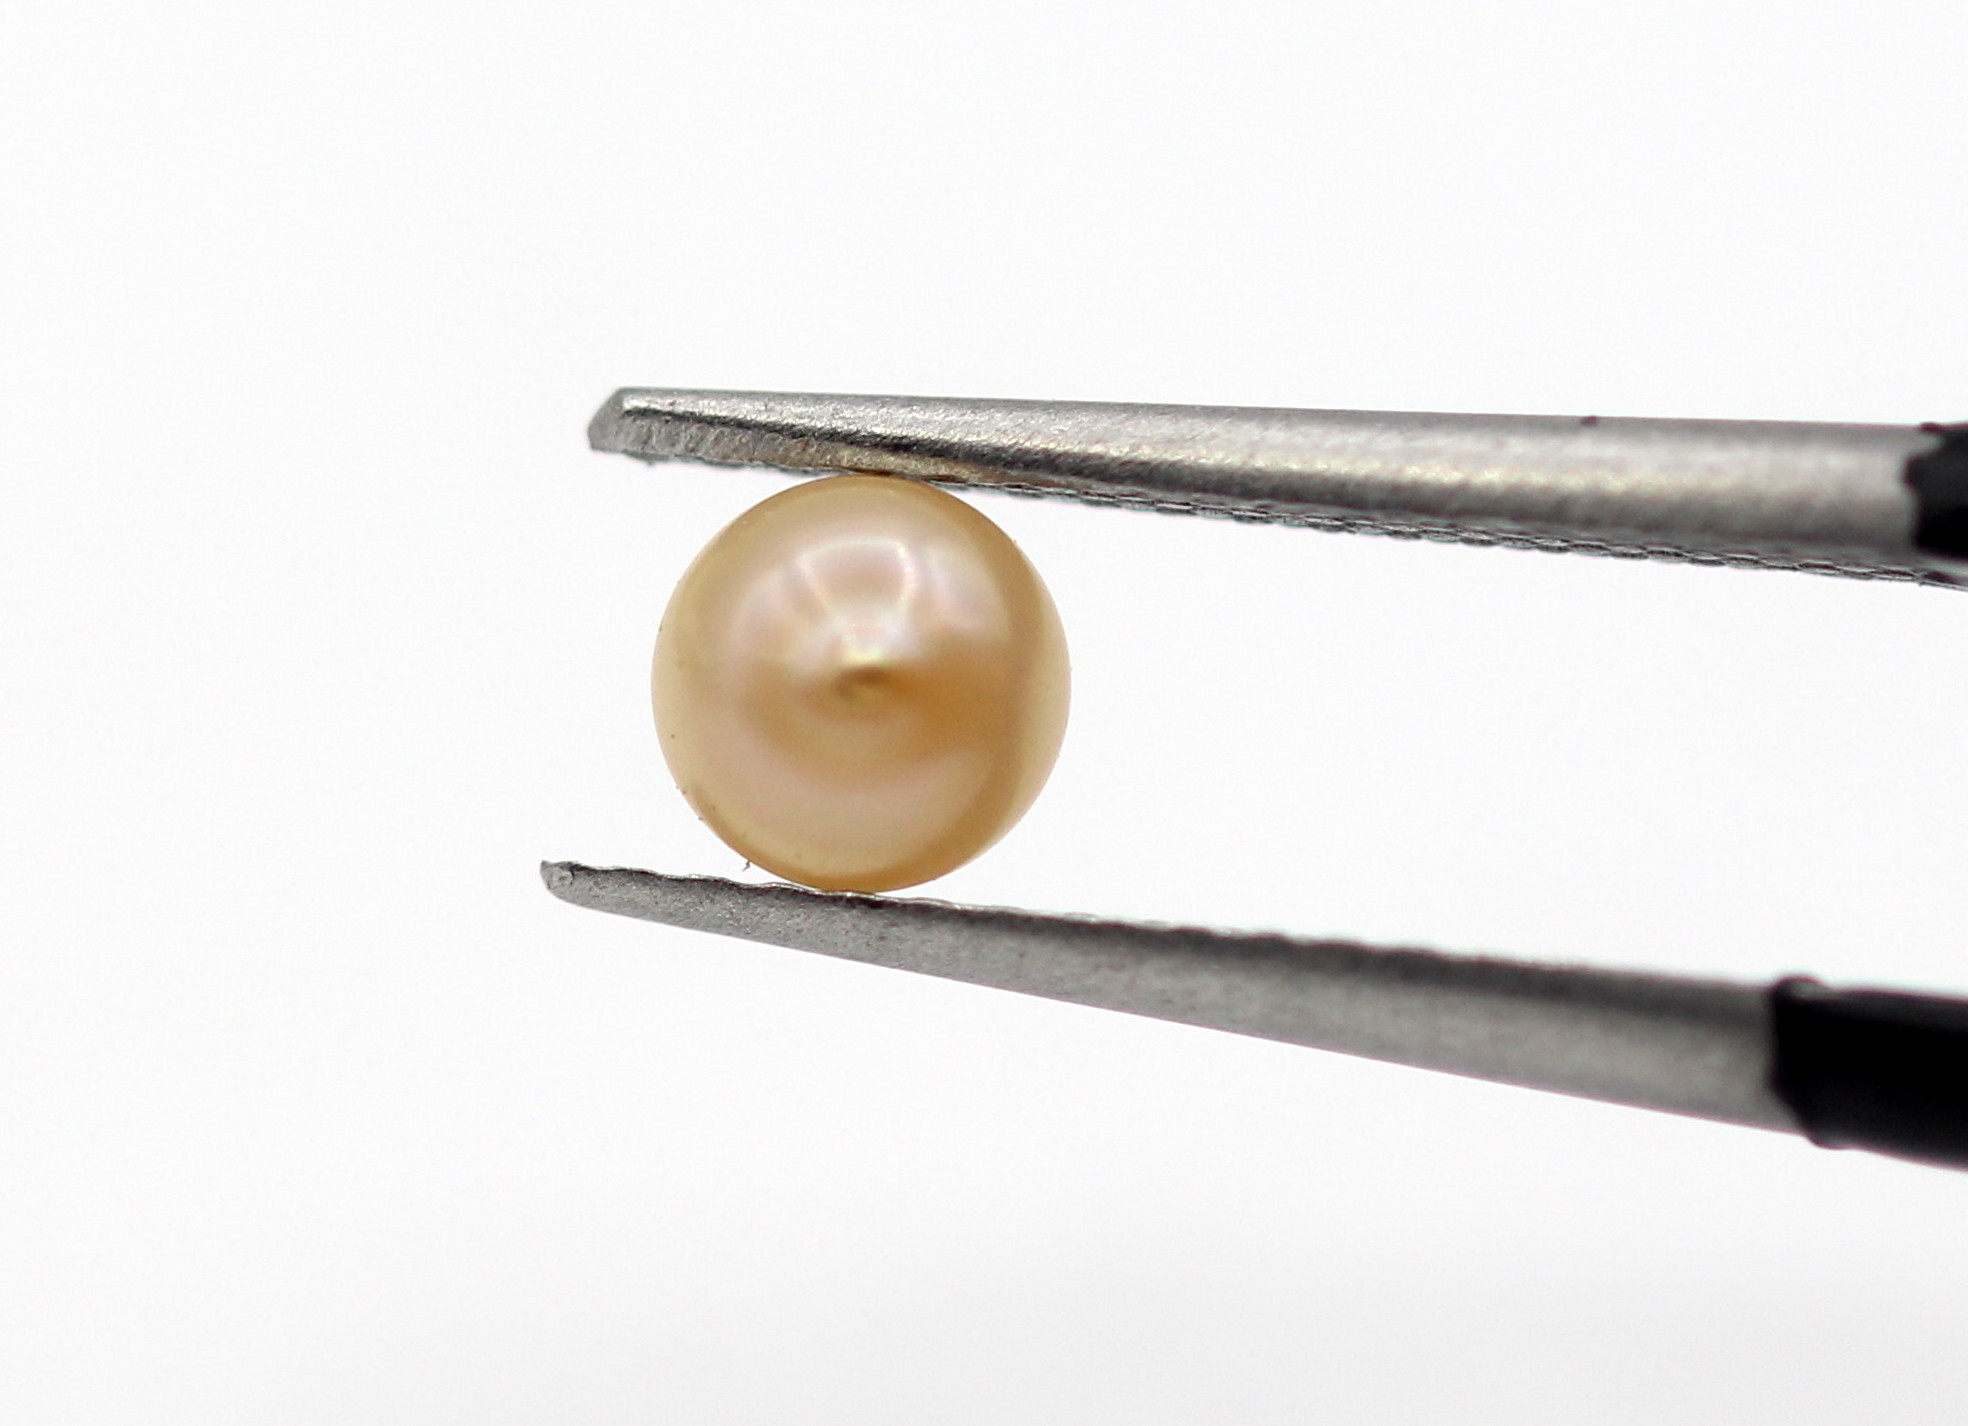 0.42 Ct Real Pearl Round Cabochon Cut Golden Cream Color Natural Pearl Certified